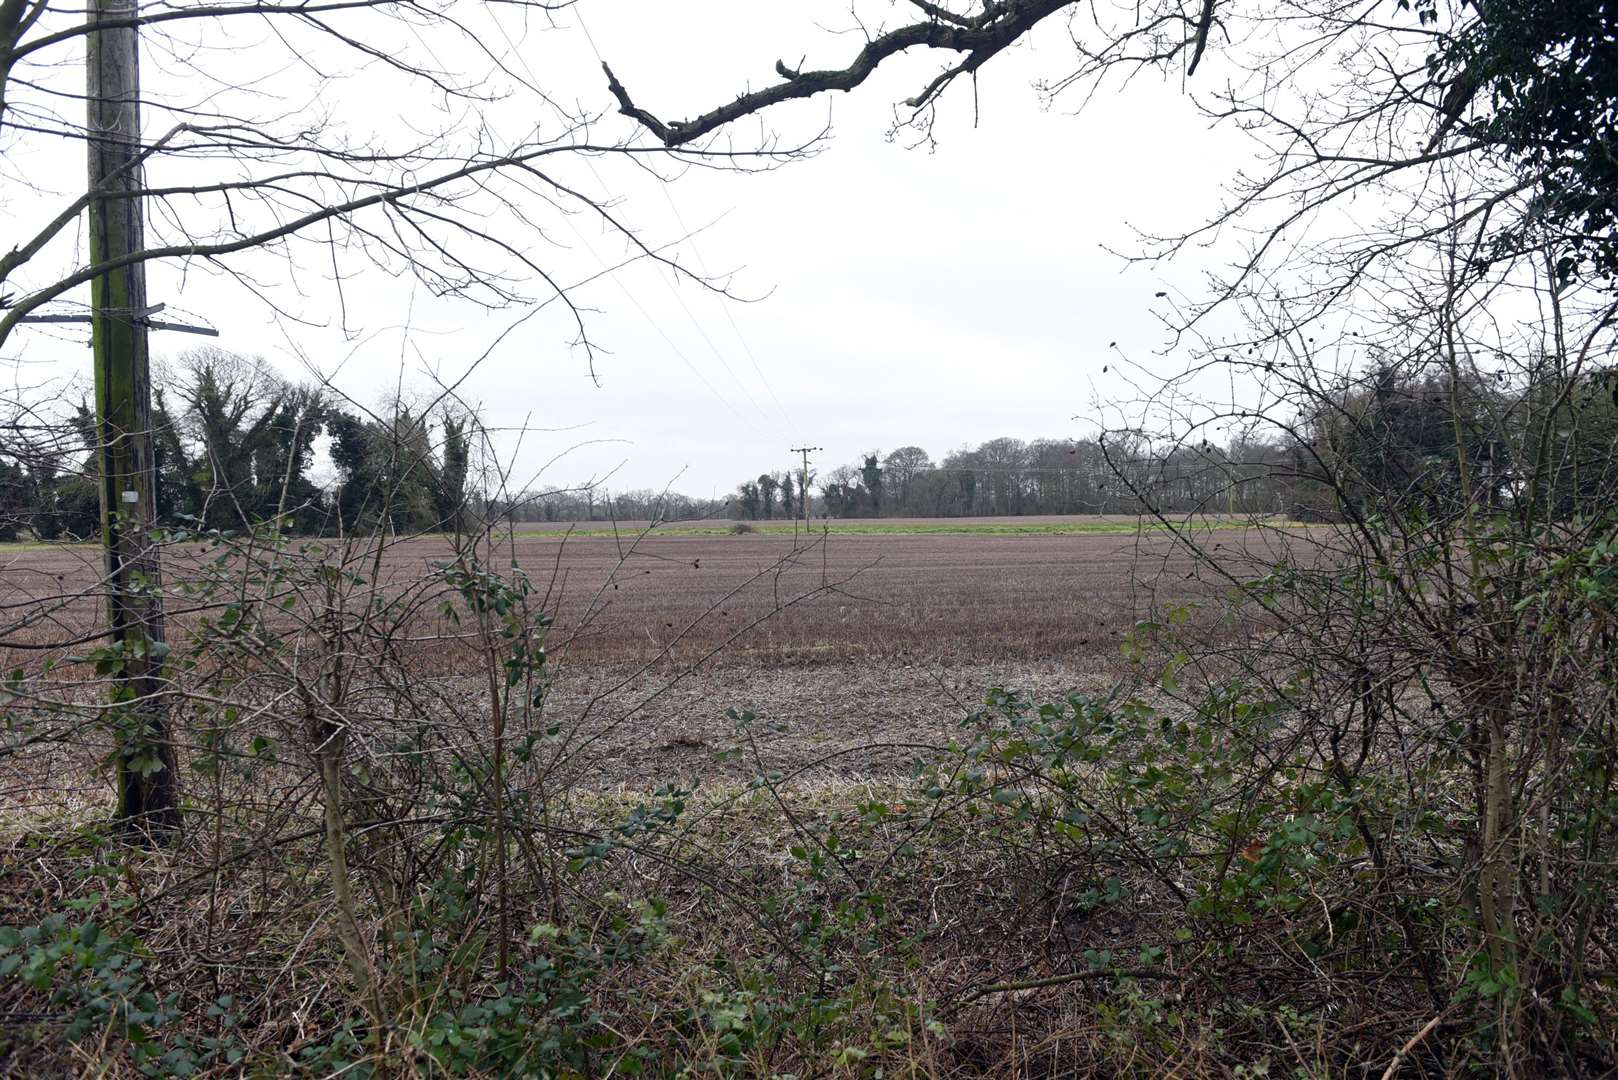 Plans to build a new school on this land in Gayton appear to have been abandoned after a proposal for a new site was submitted